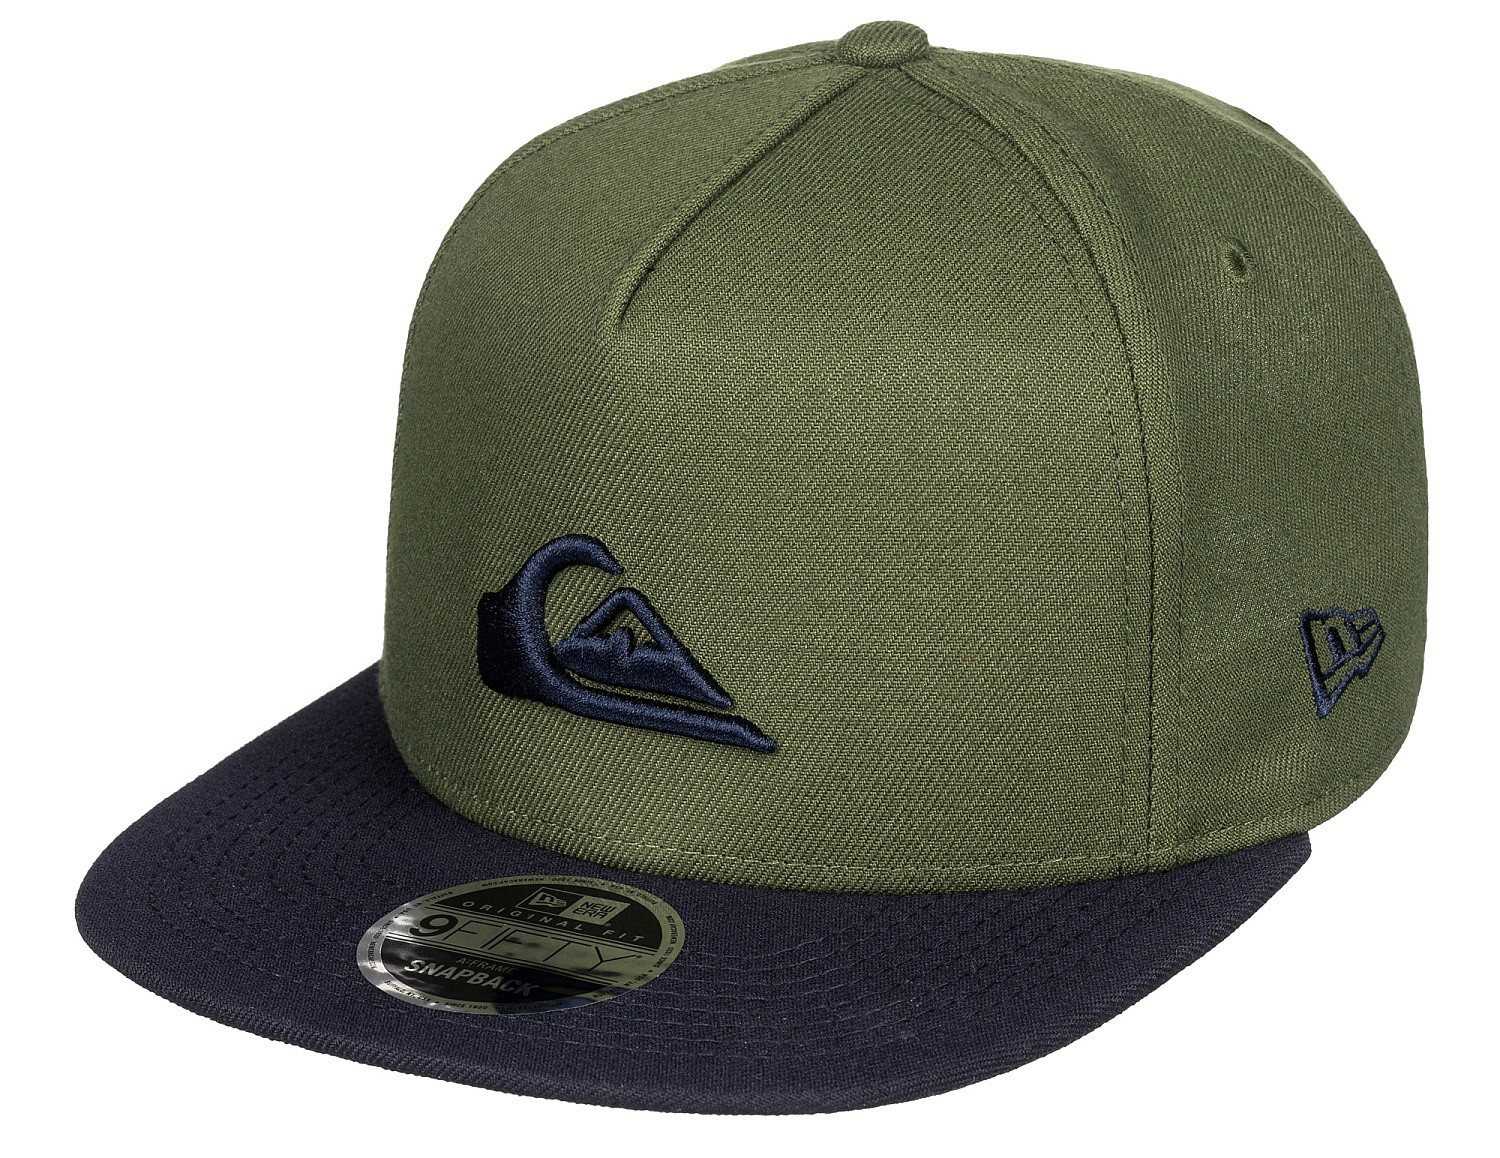 4027d70f4a3f61 ... promo code for cap quiksilver stuckles snap new era 9fi aframe snapback  cqy0 thyme mens ae169